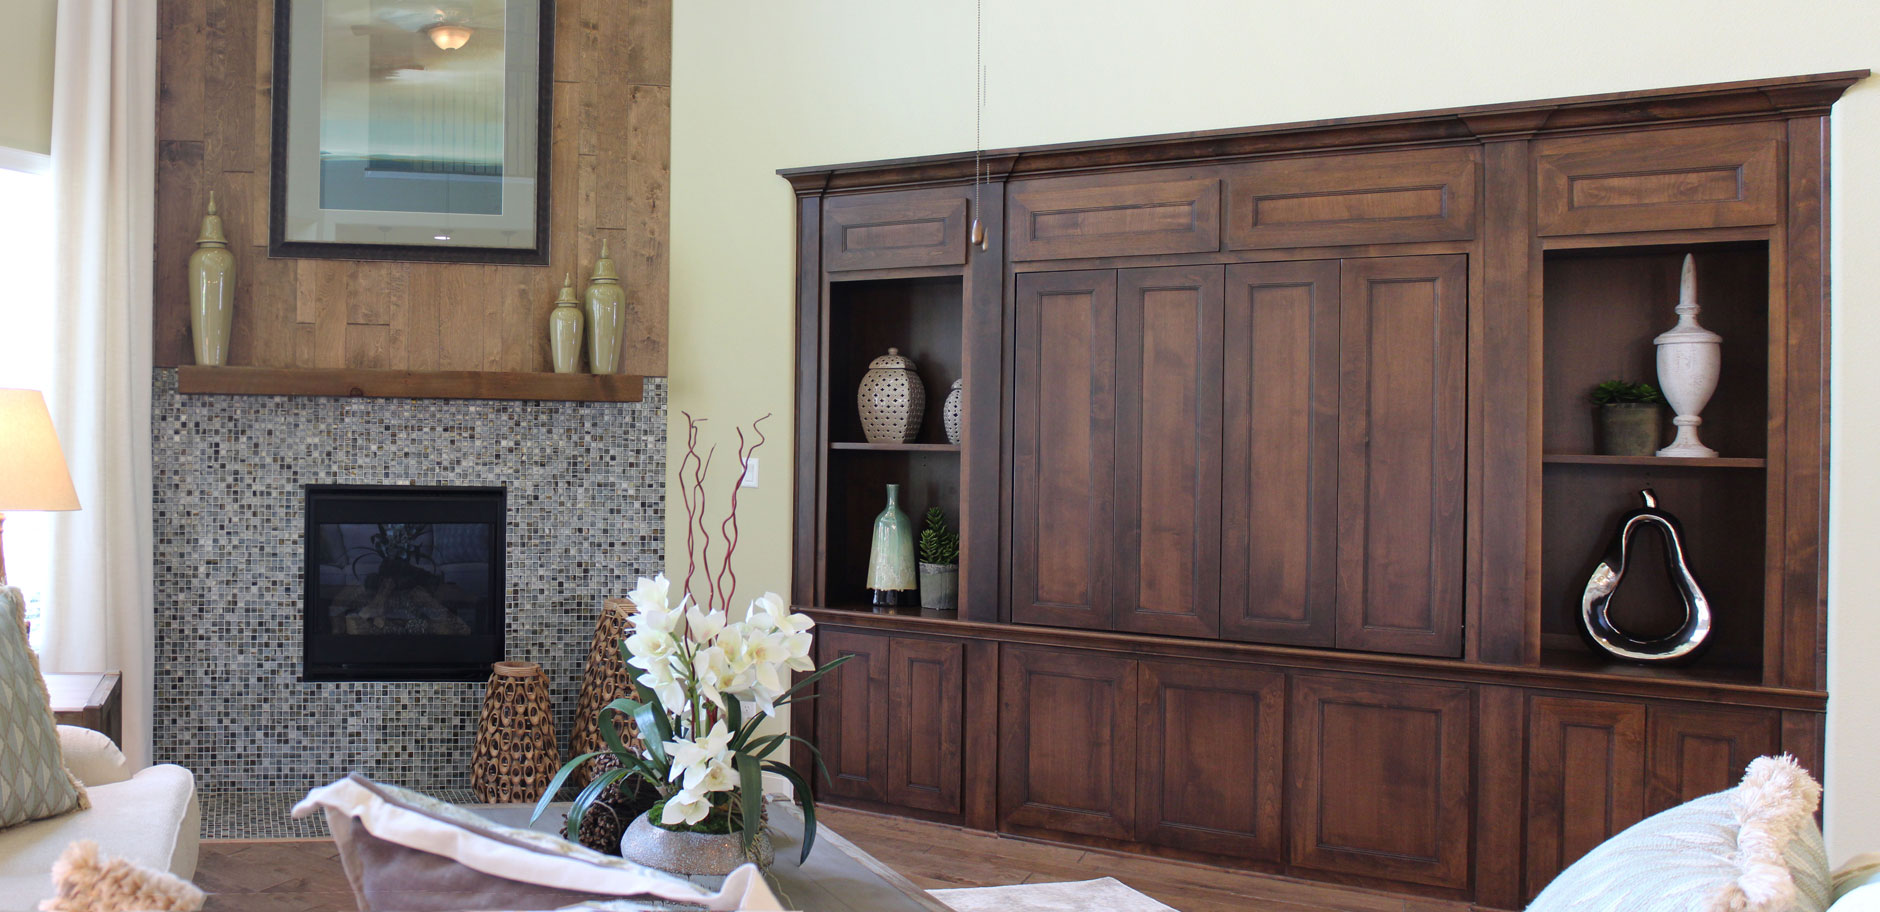 Travisso built in media cabinet entertainment center by Burrows Cabinets with Terrazzo doors